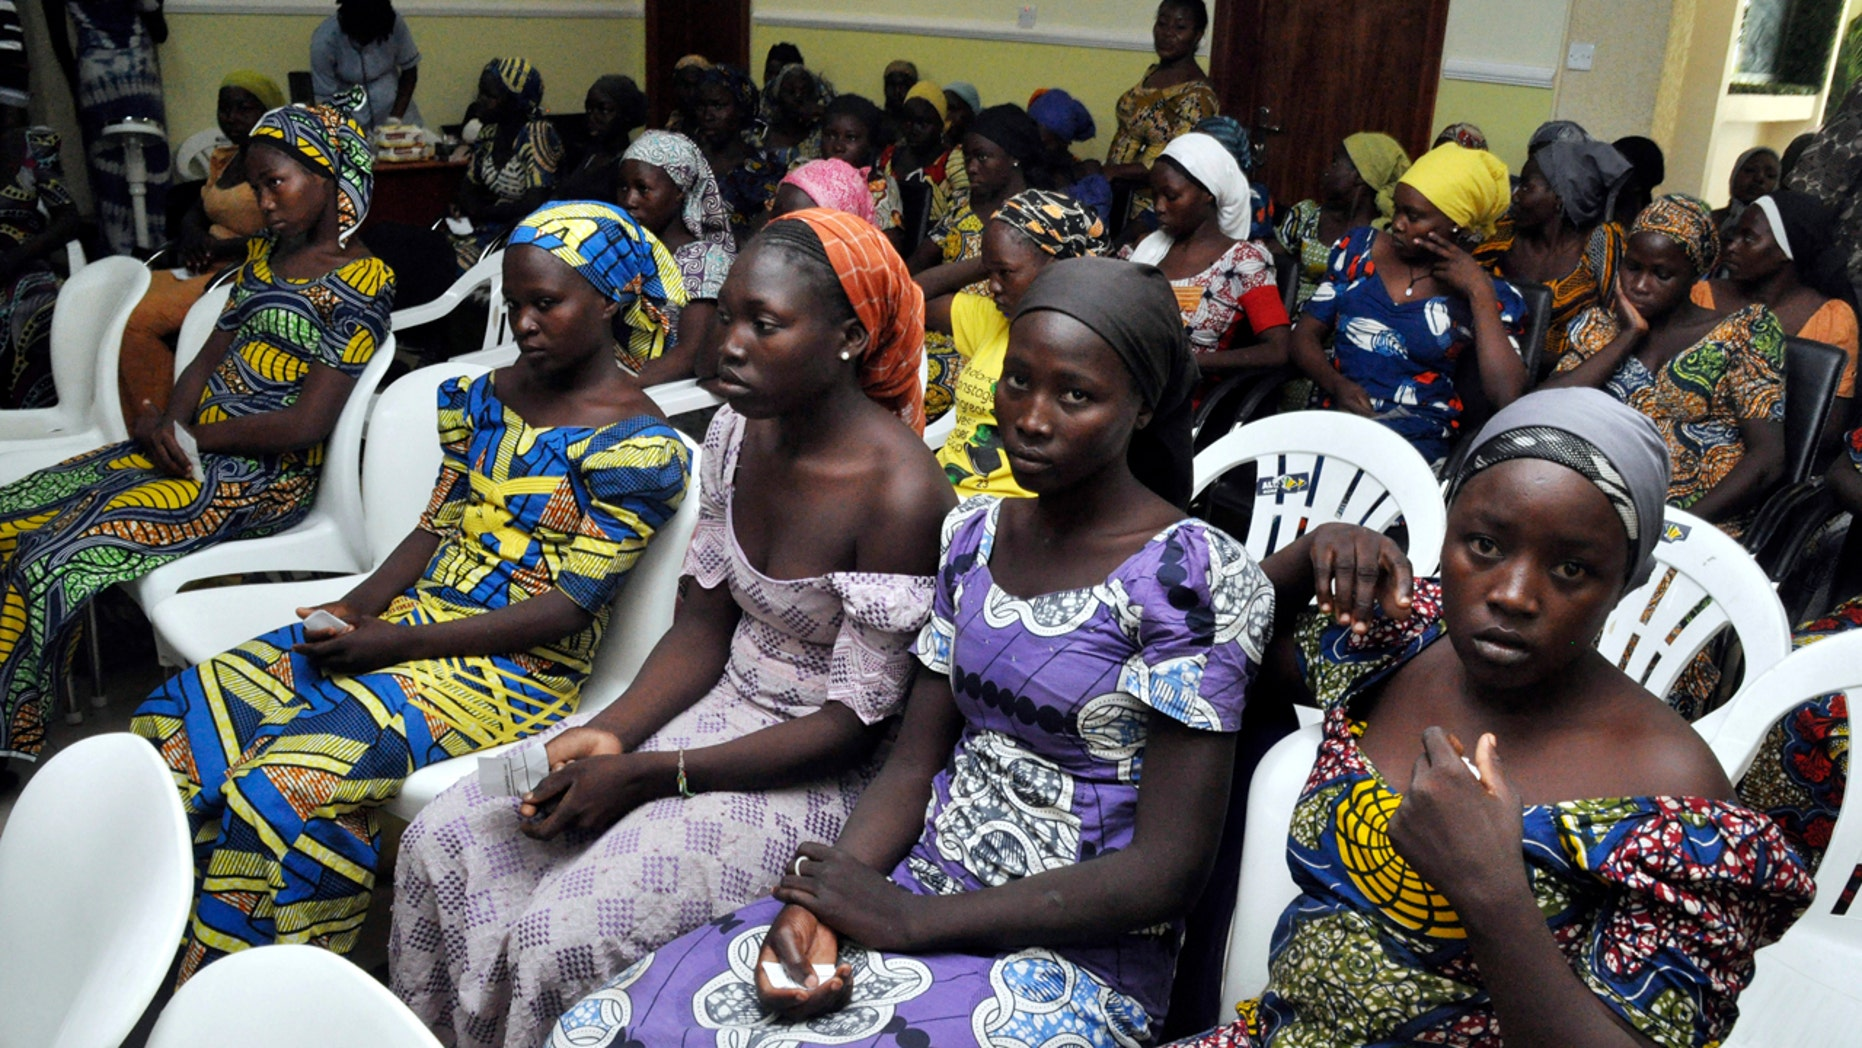 Chibok school girls recently freed from Boko Haram captivity are seen in Abuja, Nigeria, Sunday, May 7, 2017.